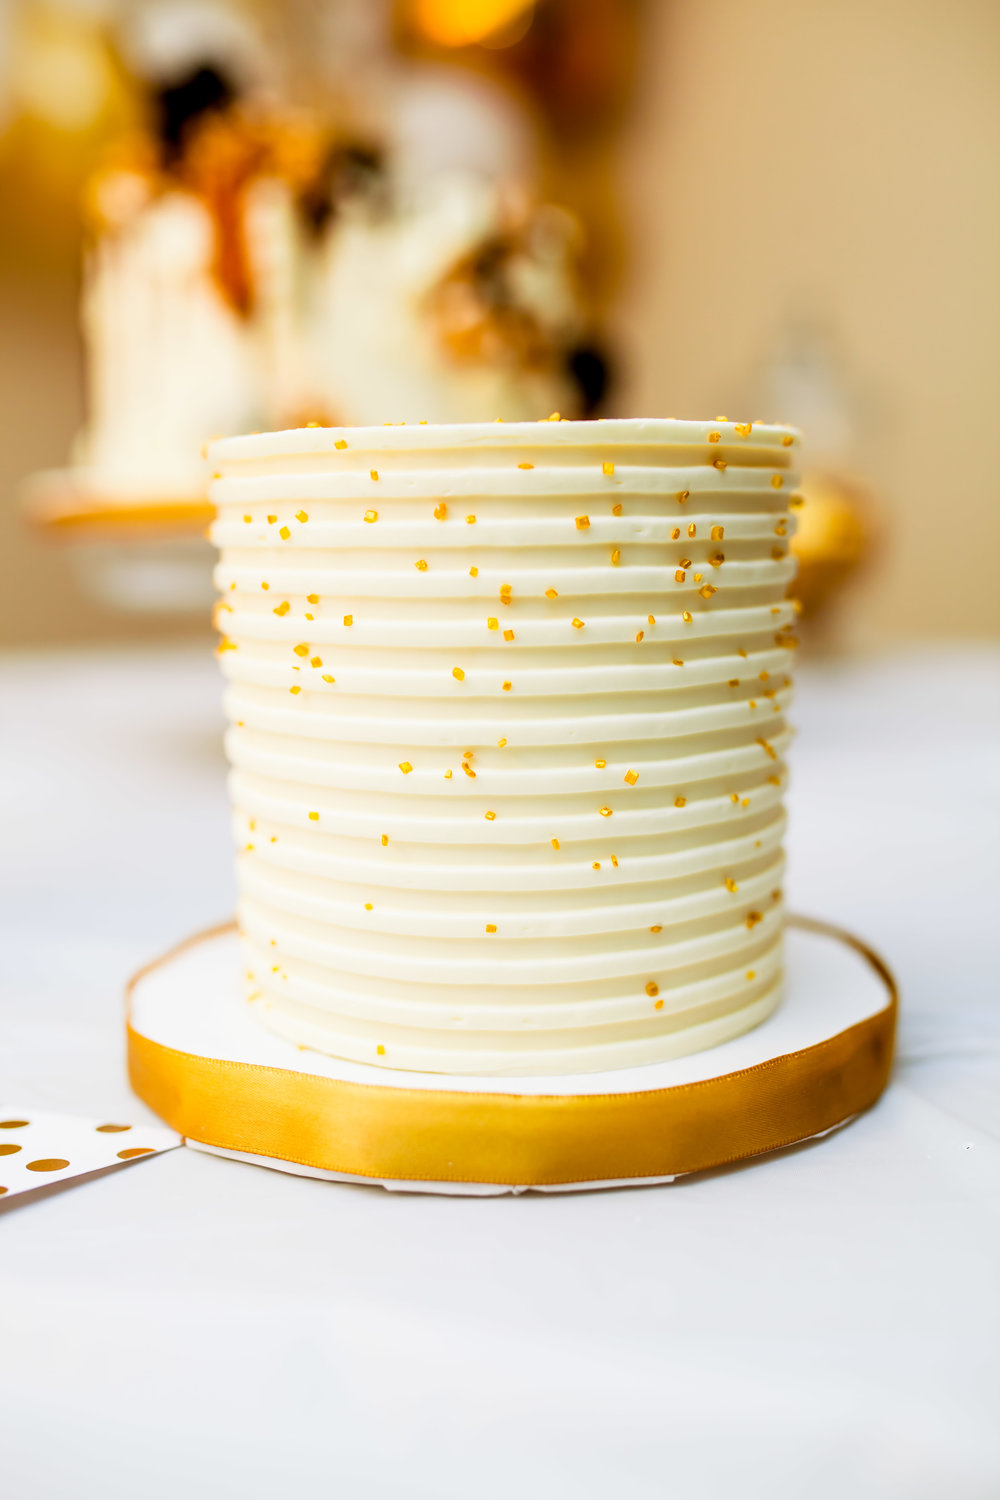 Cake Le dolci Photographer Toronto Karimah gheddai Birthday Photographer Toronto Party Event Photographer Muslim DIY decor cute 2017 Eritrean Somali Ontario Le dolci Ideas Karimah Gheddai Photography cake drip cake cupcakes Ethiopian